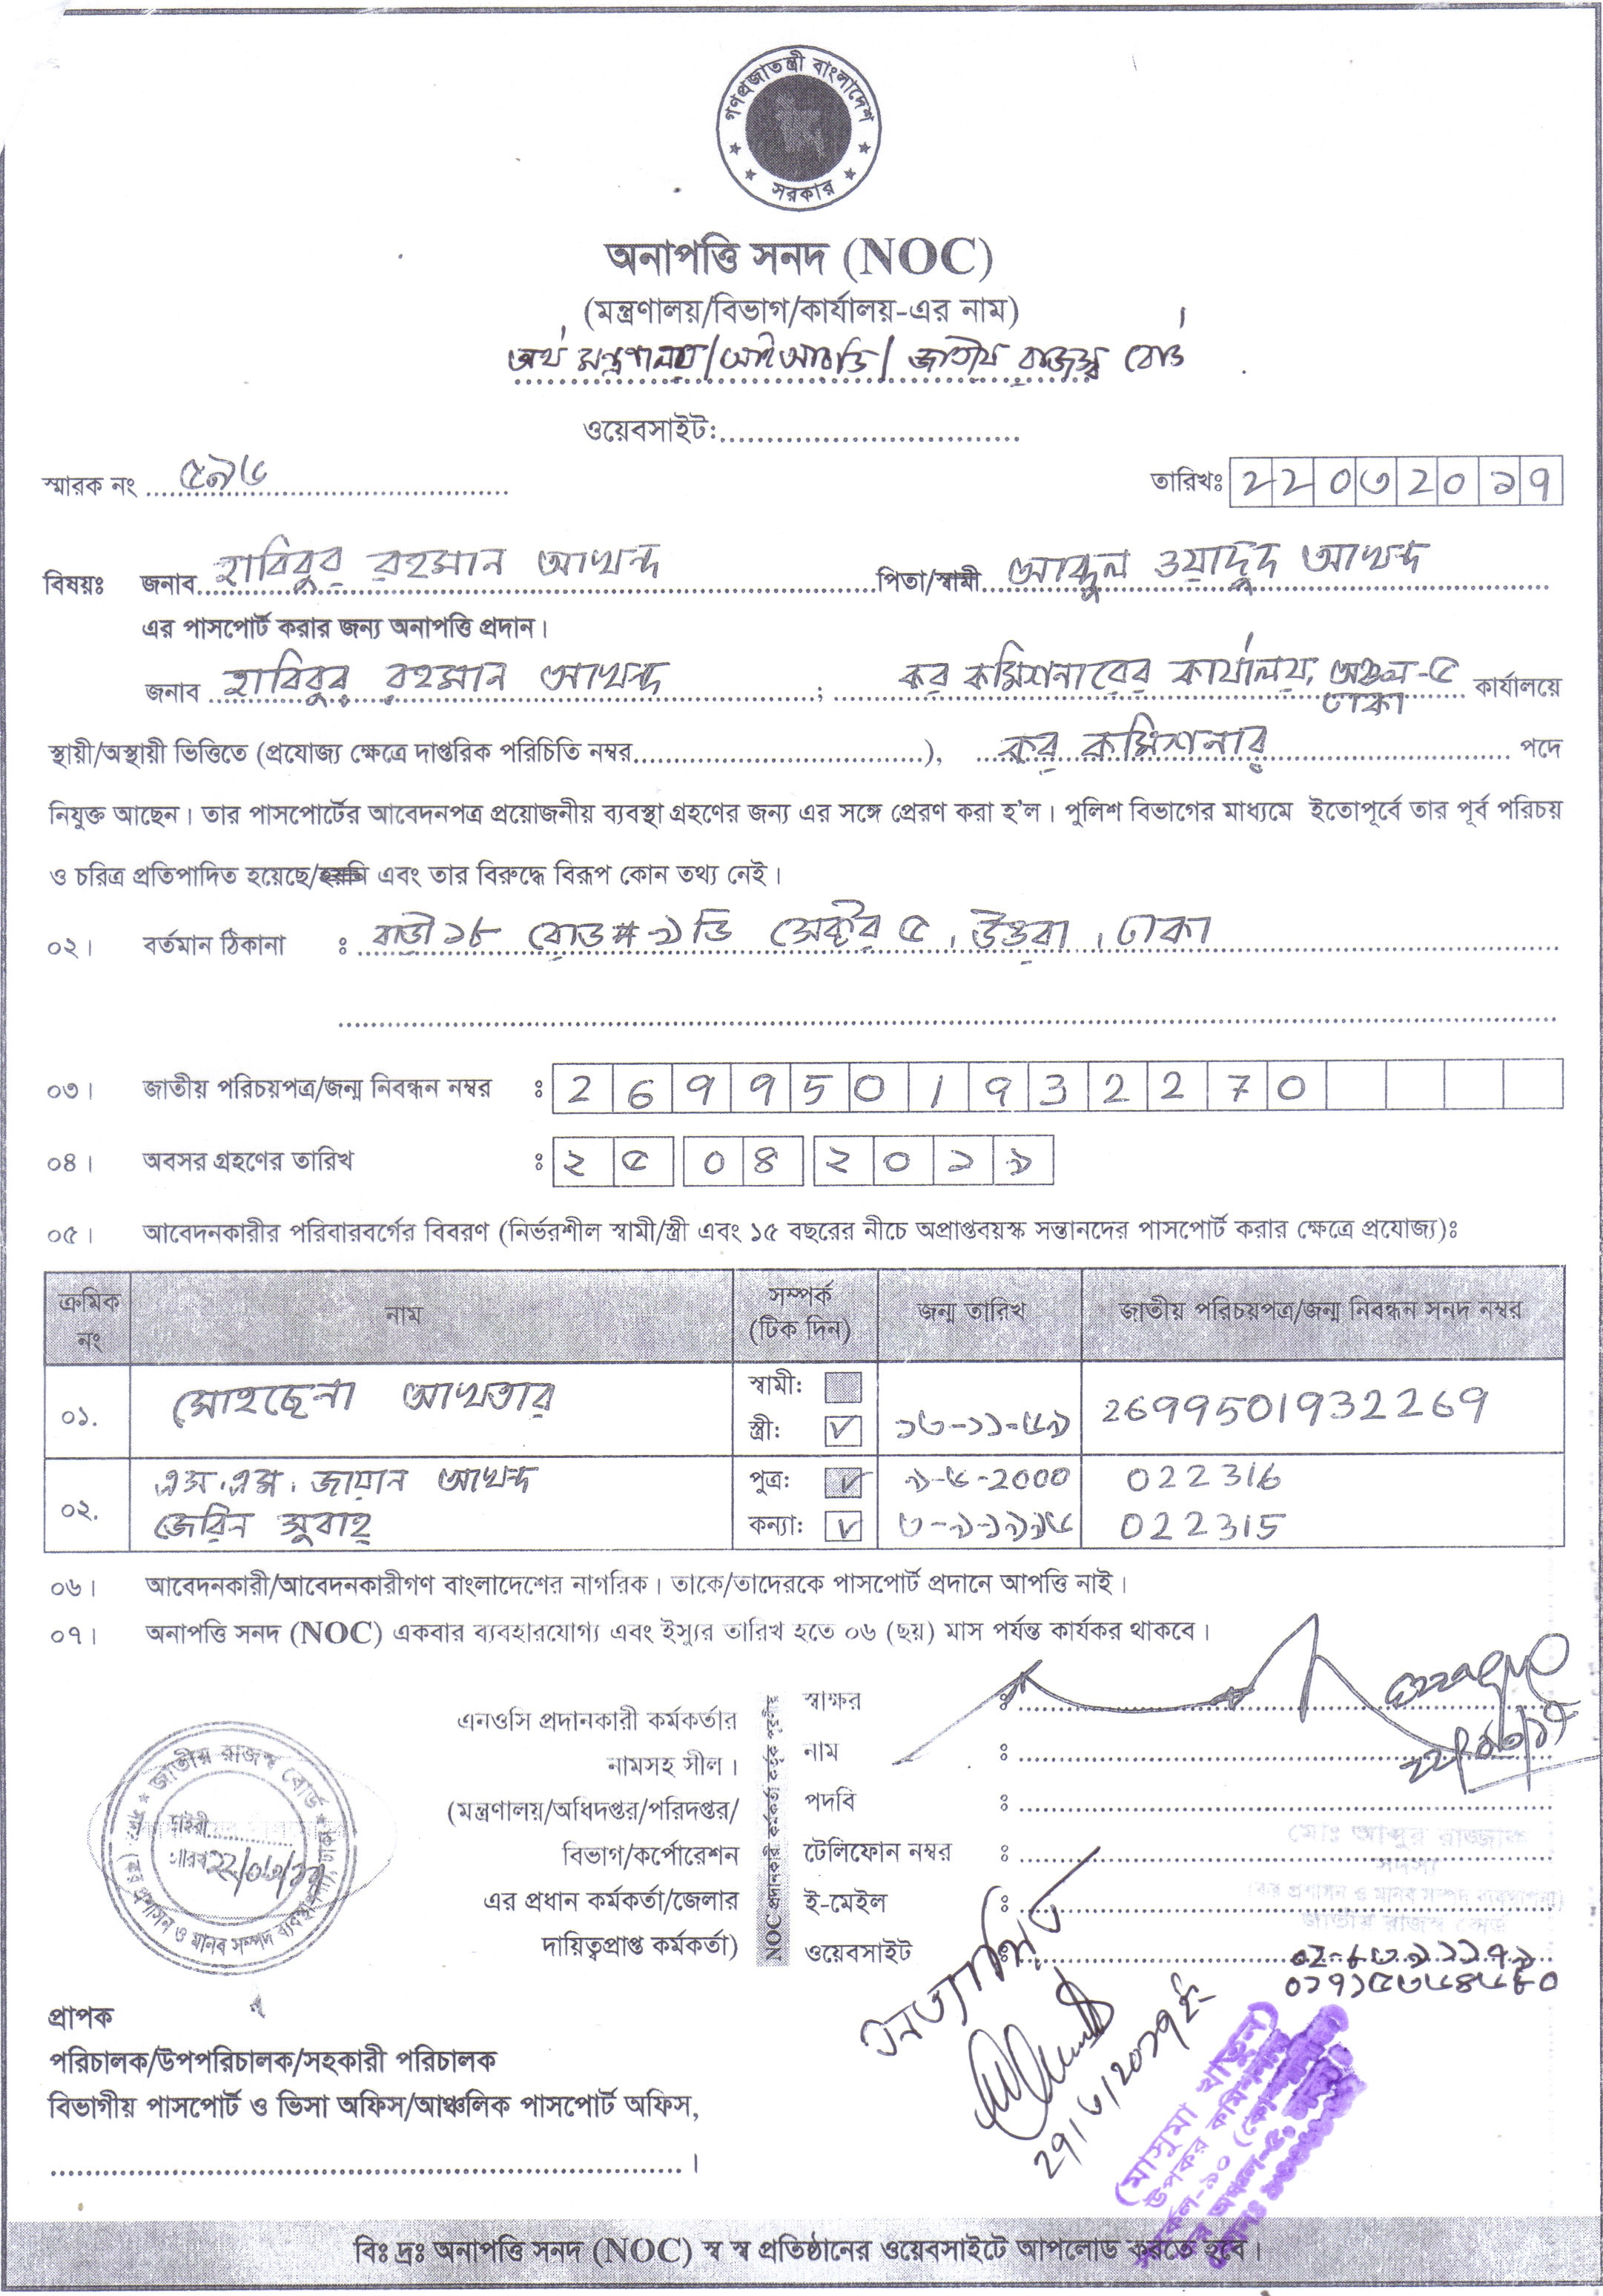 Income Tax Return Form Bd